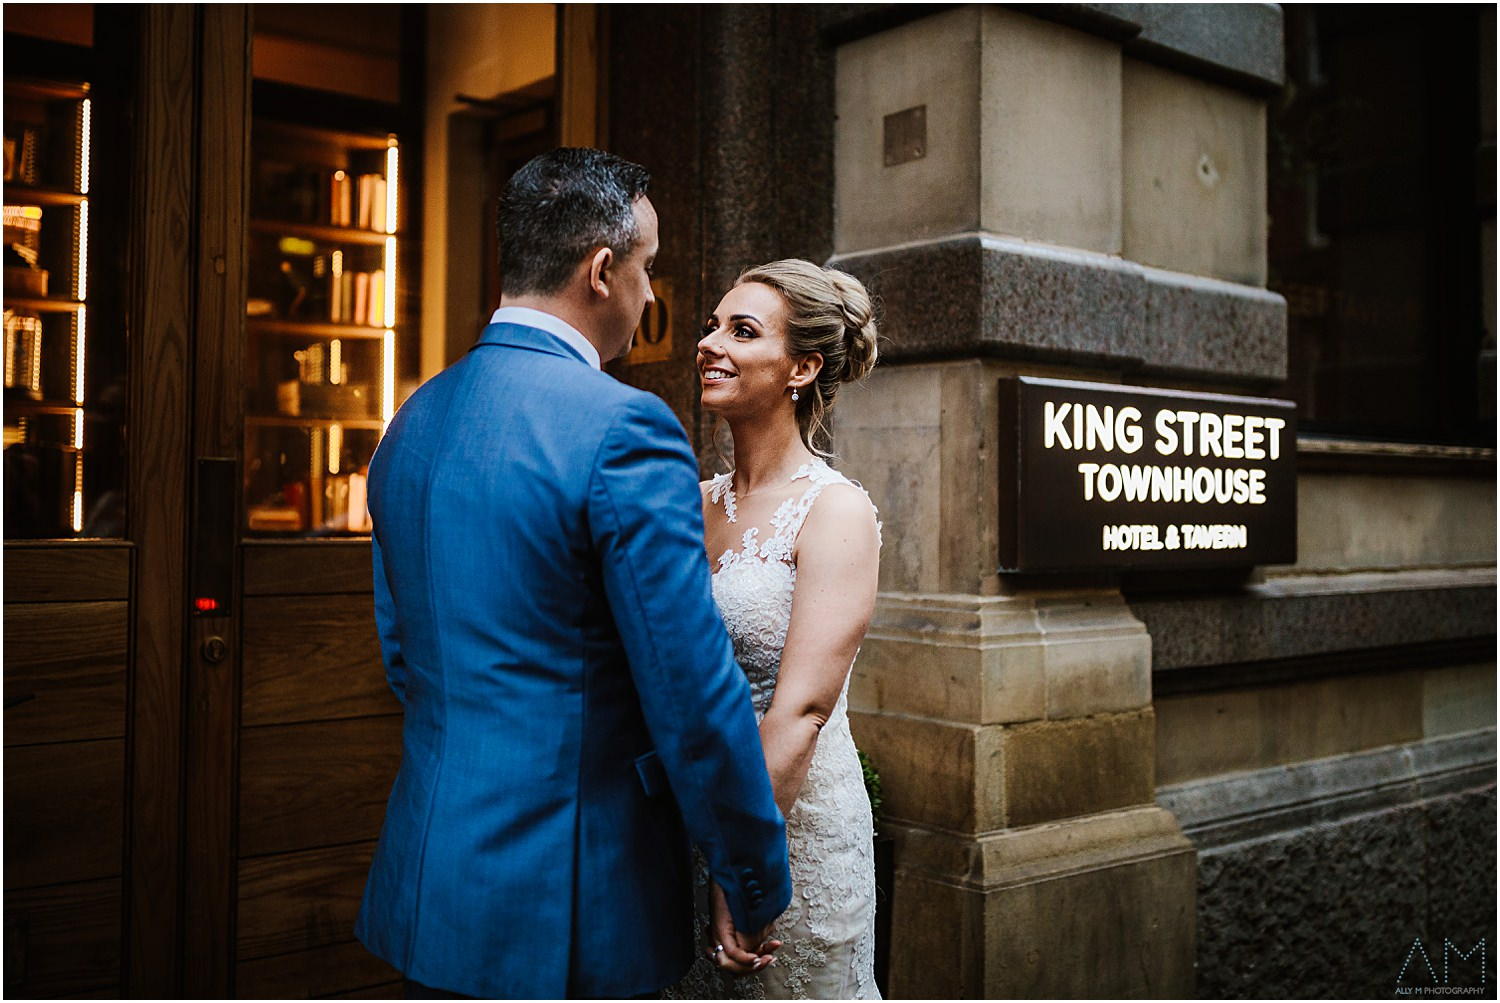 Wedding at King street townhouse